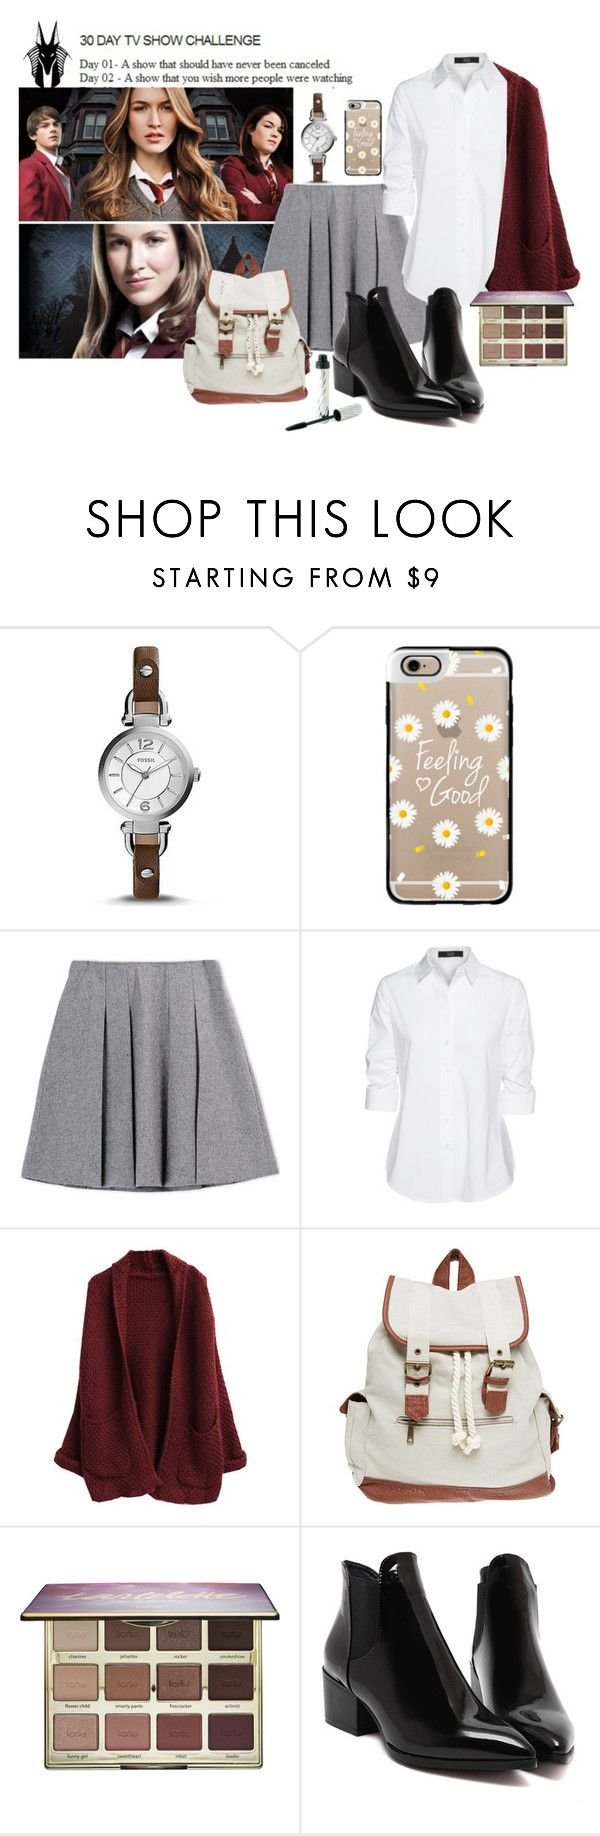 """""""Day 02 - A show that you wish more people were watching : House of Anubis    street style #53"""" by alexiadoremma ❤ liked on Polyvore featuring FOSSIL, Casetify, Fall Winter Spring Summer, Steffen Schraut, Wet Seal, tarte, Borghese, women's clothing, women and female"""